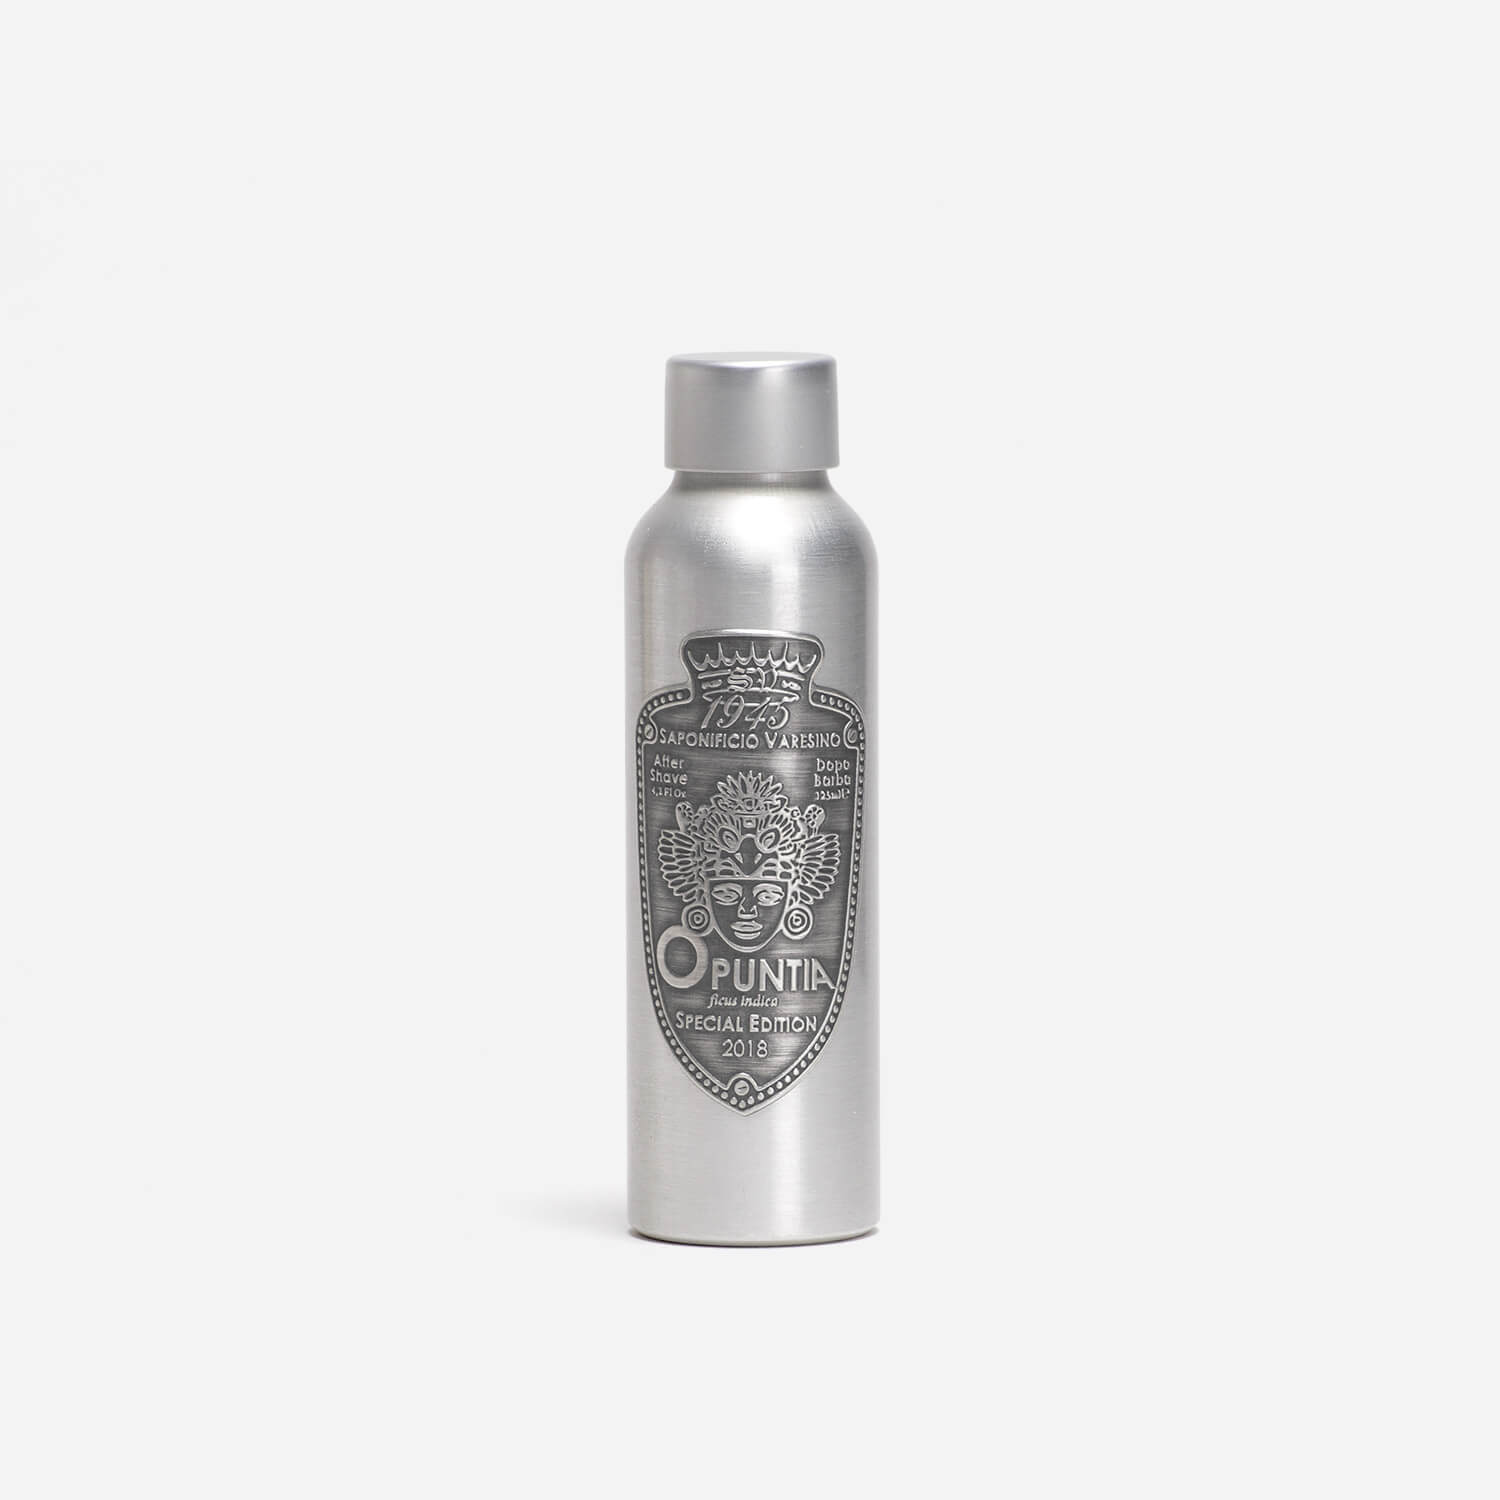 Saponificio Varesino Opuntia After Shave Lotion